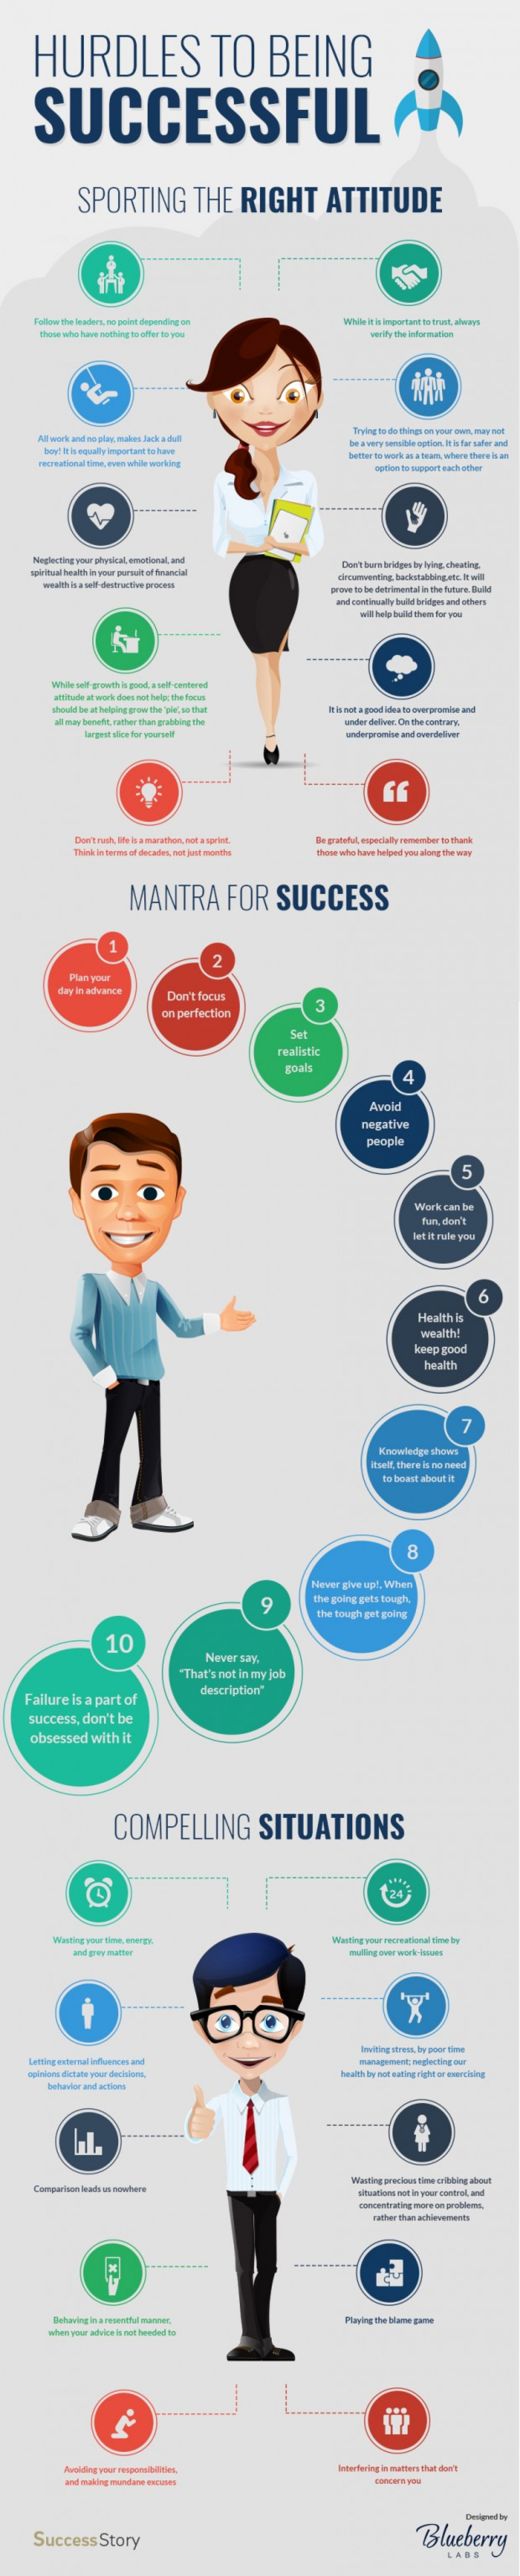 Hurdles to Being Successful Infographic